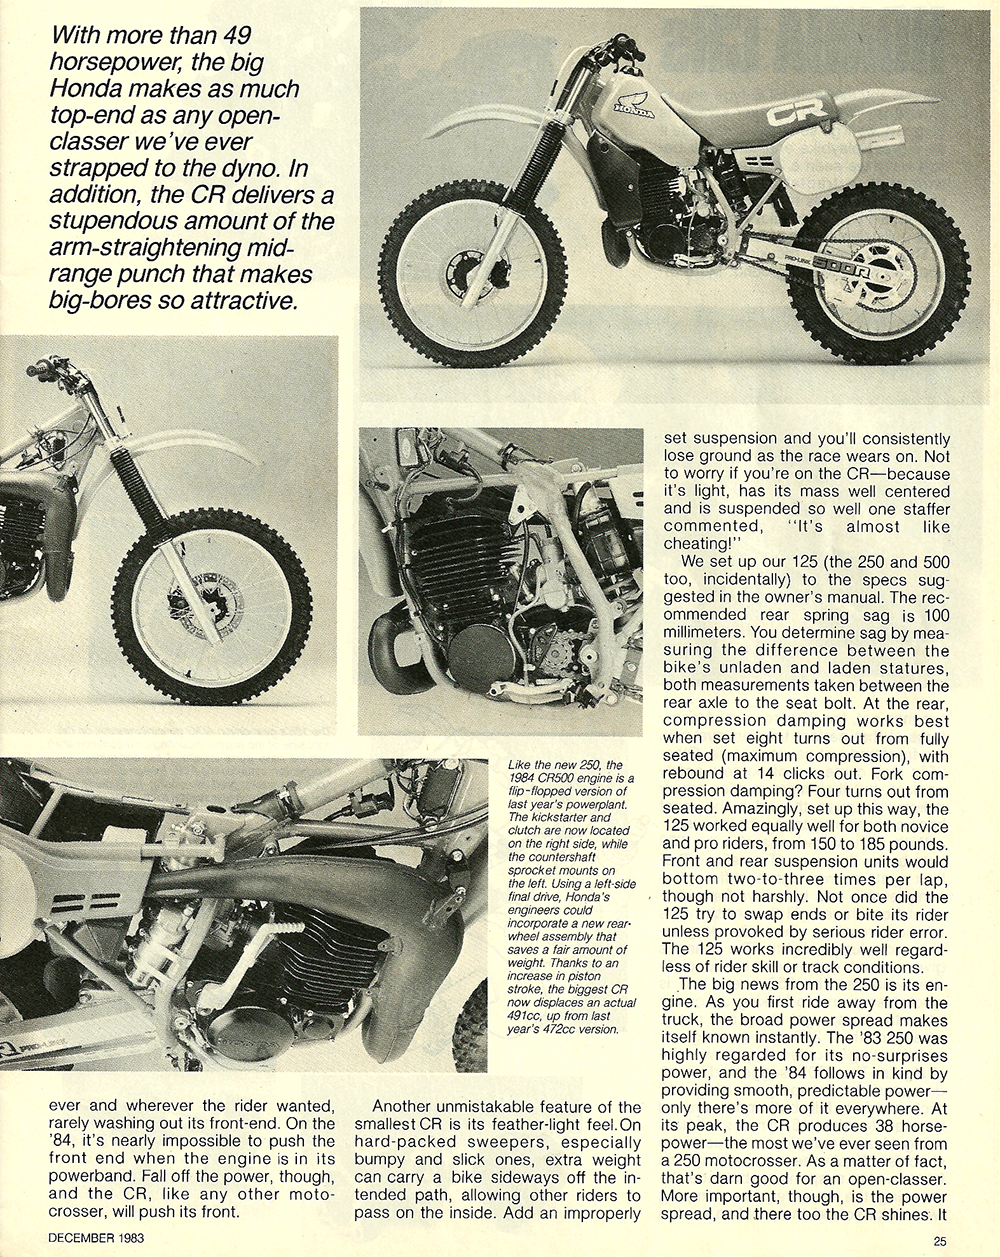 1984 Honda CR 125 250 500 road test 08.jpg